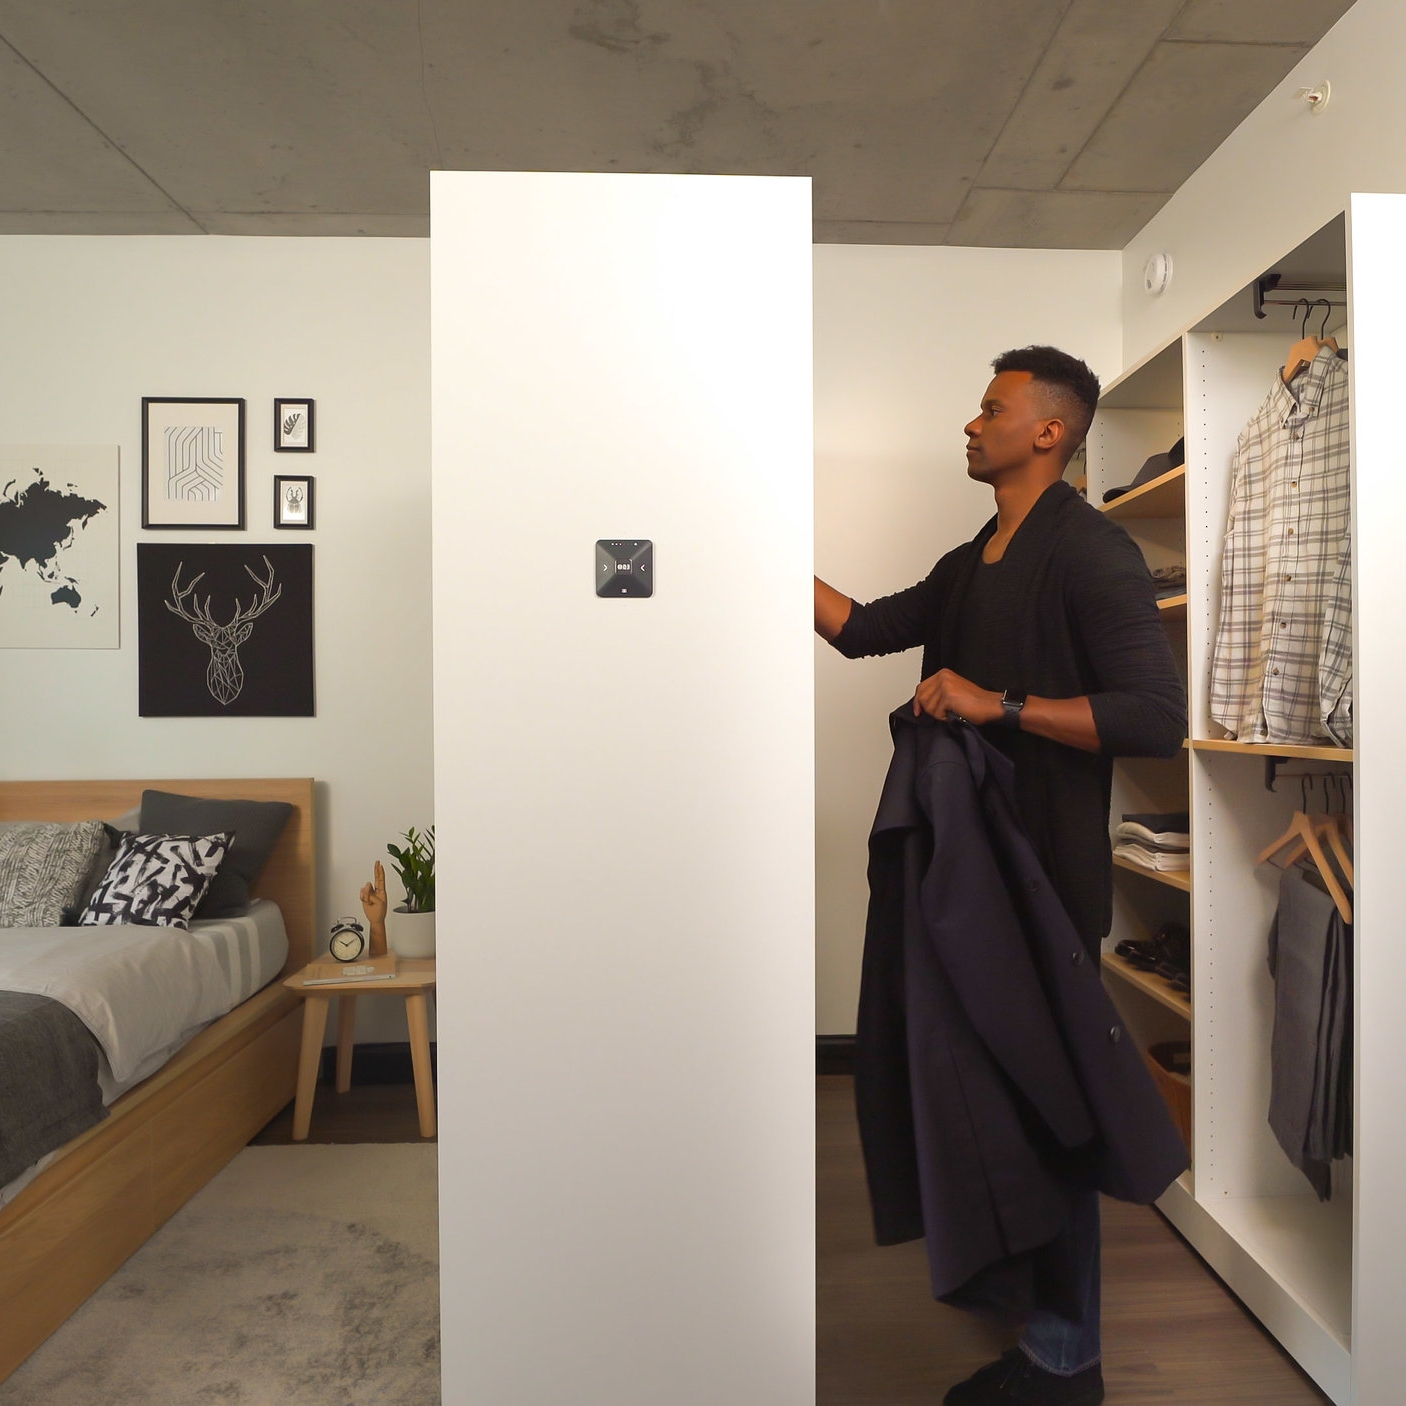 Ori Pocket Closet - The Ori Pocket Closet is the walk-in closet you've always wanted, but never had the room for.